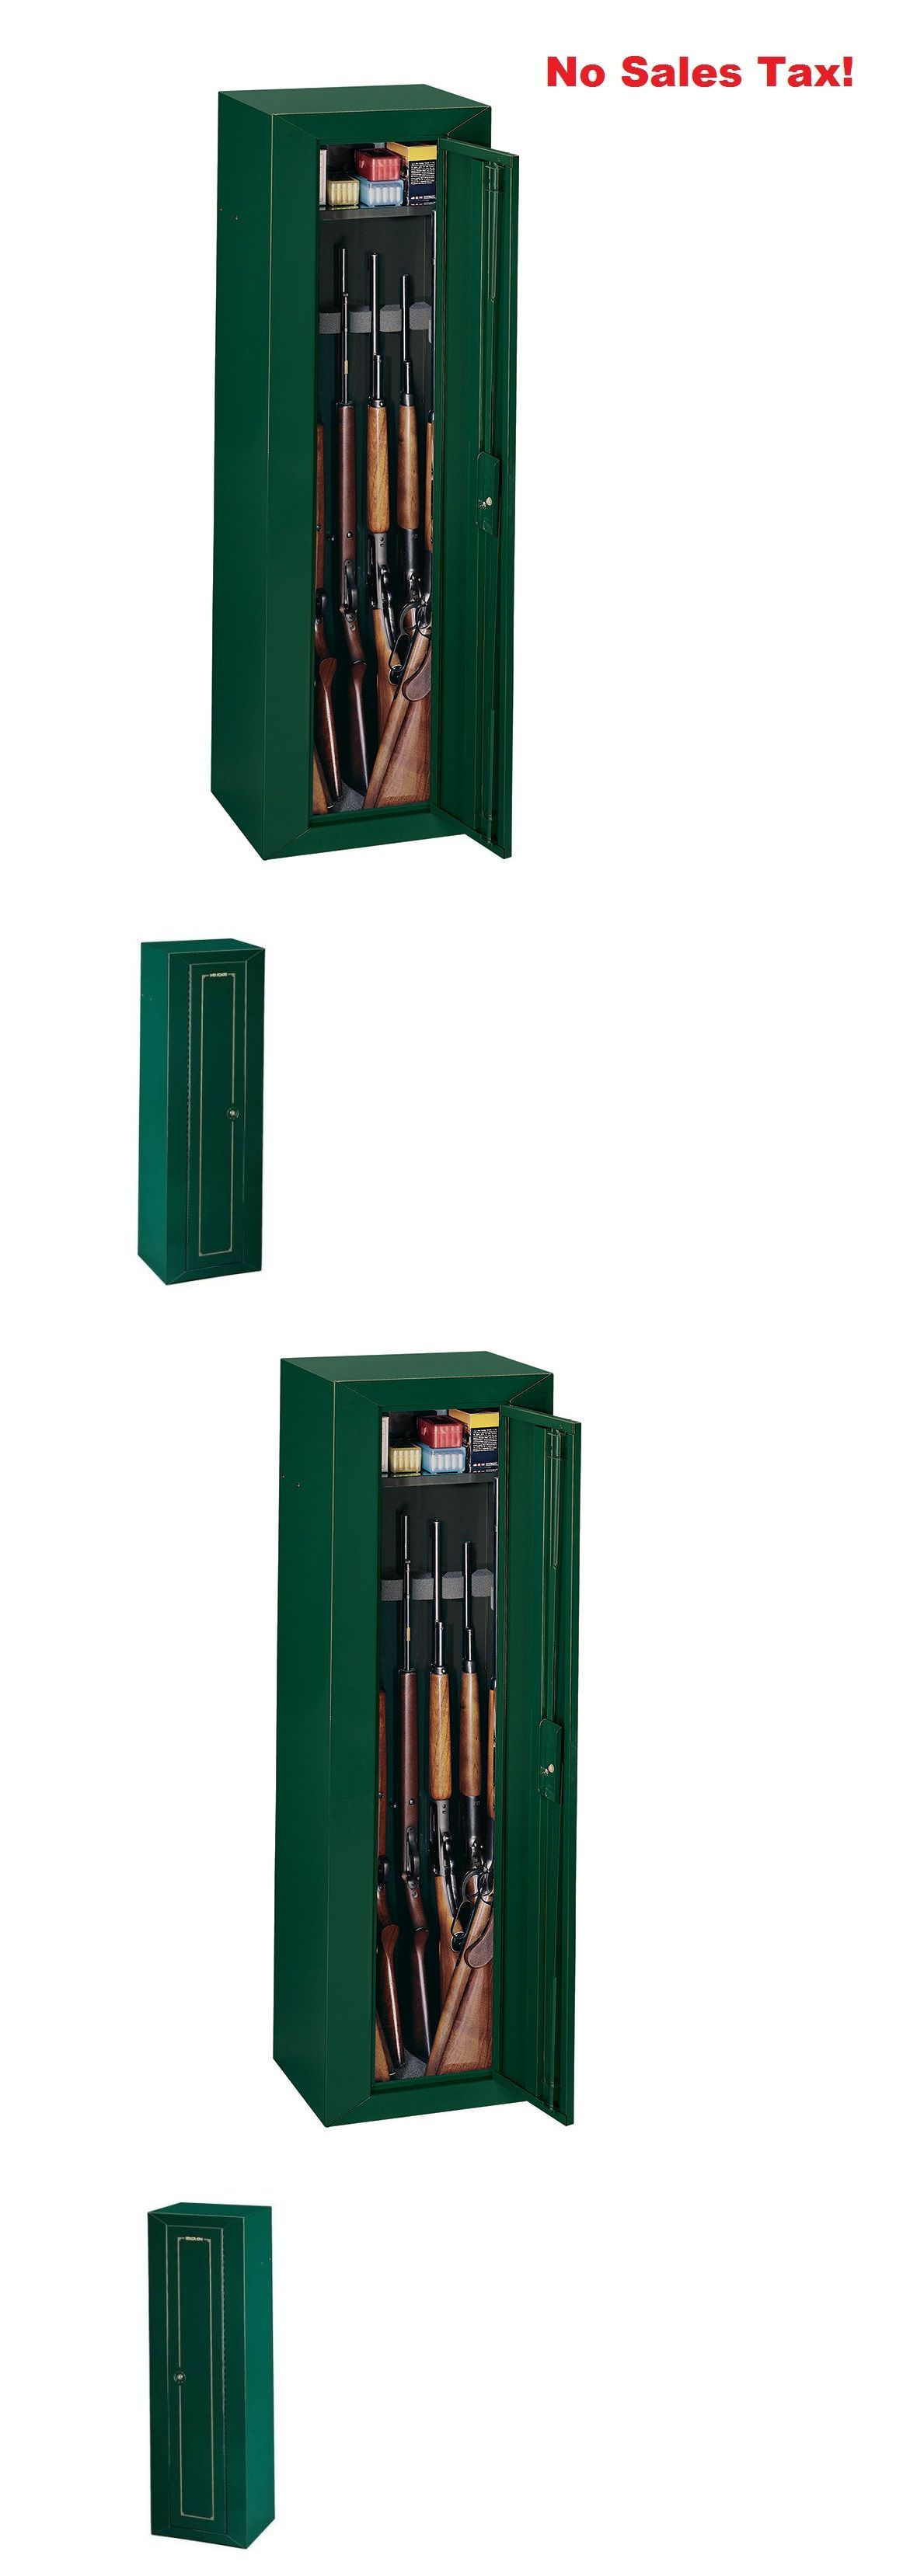 Cabinets and Safes Gun Security Cabinet 10 Guns Safe Lock